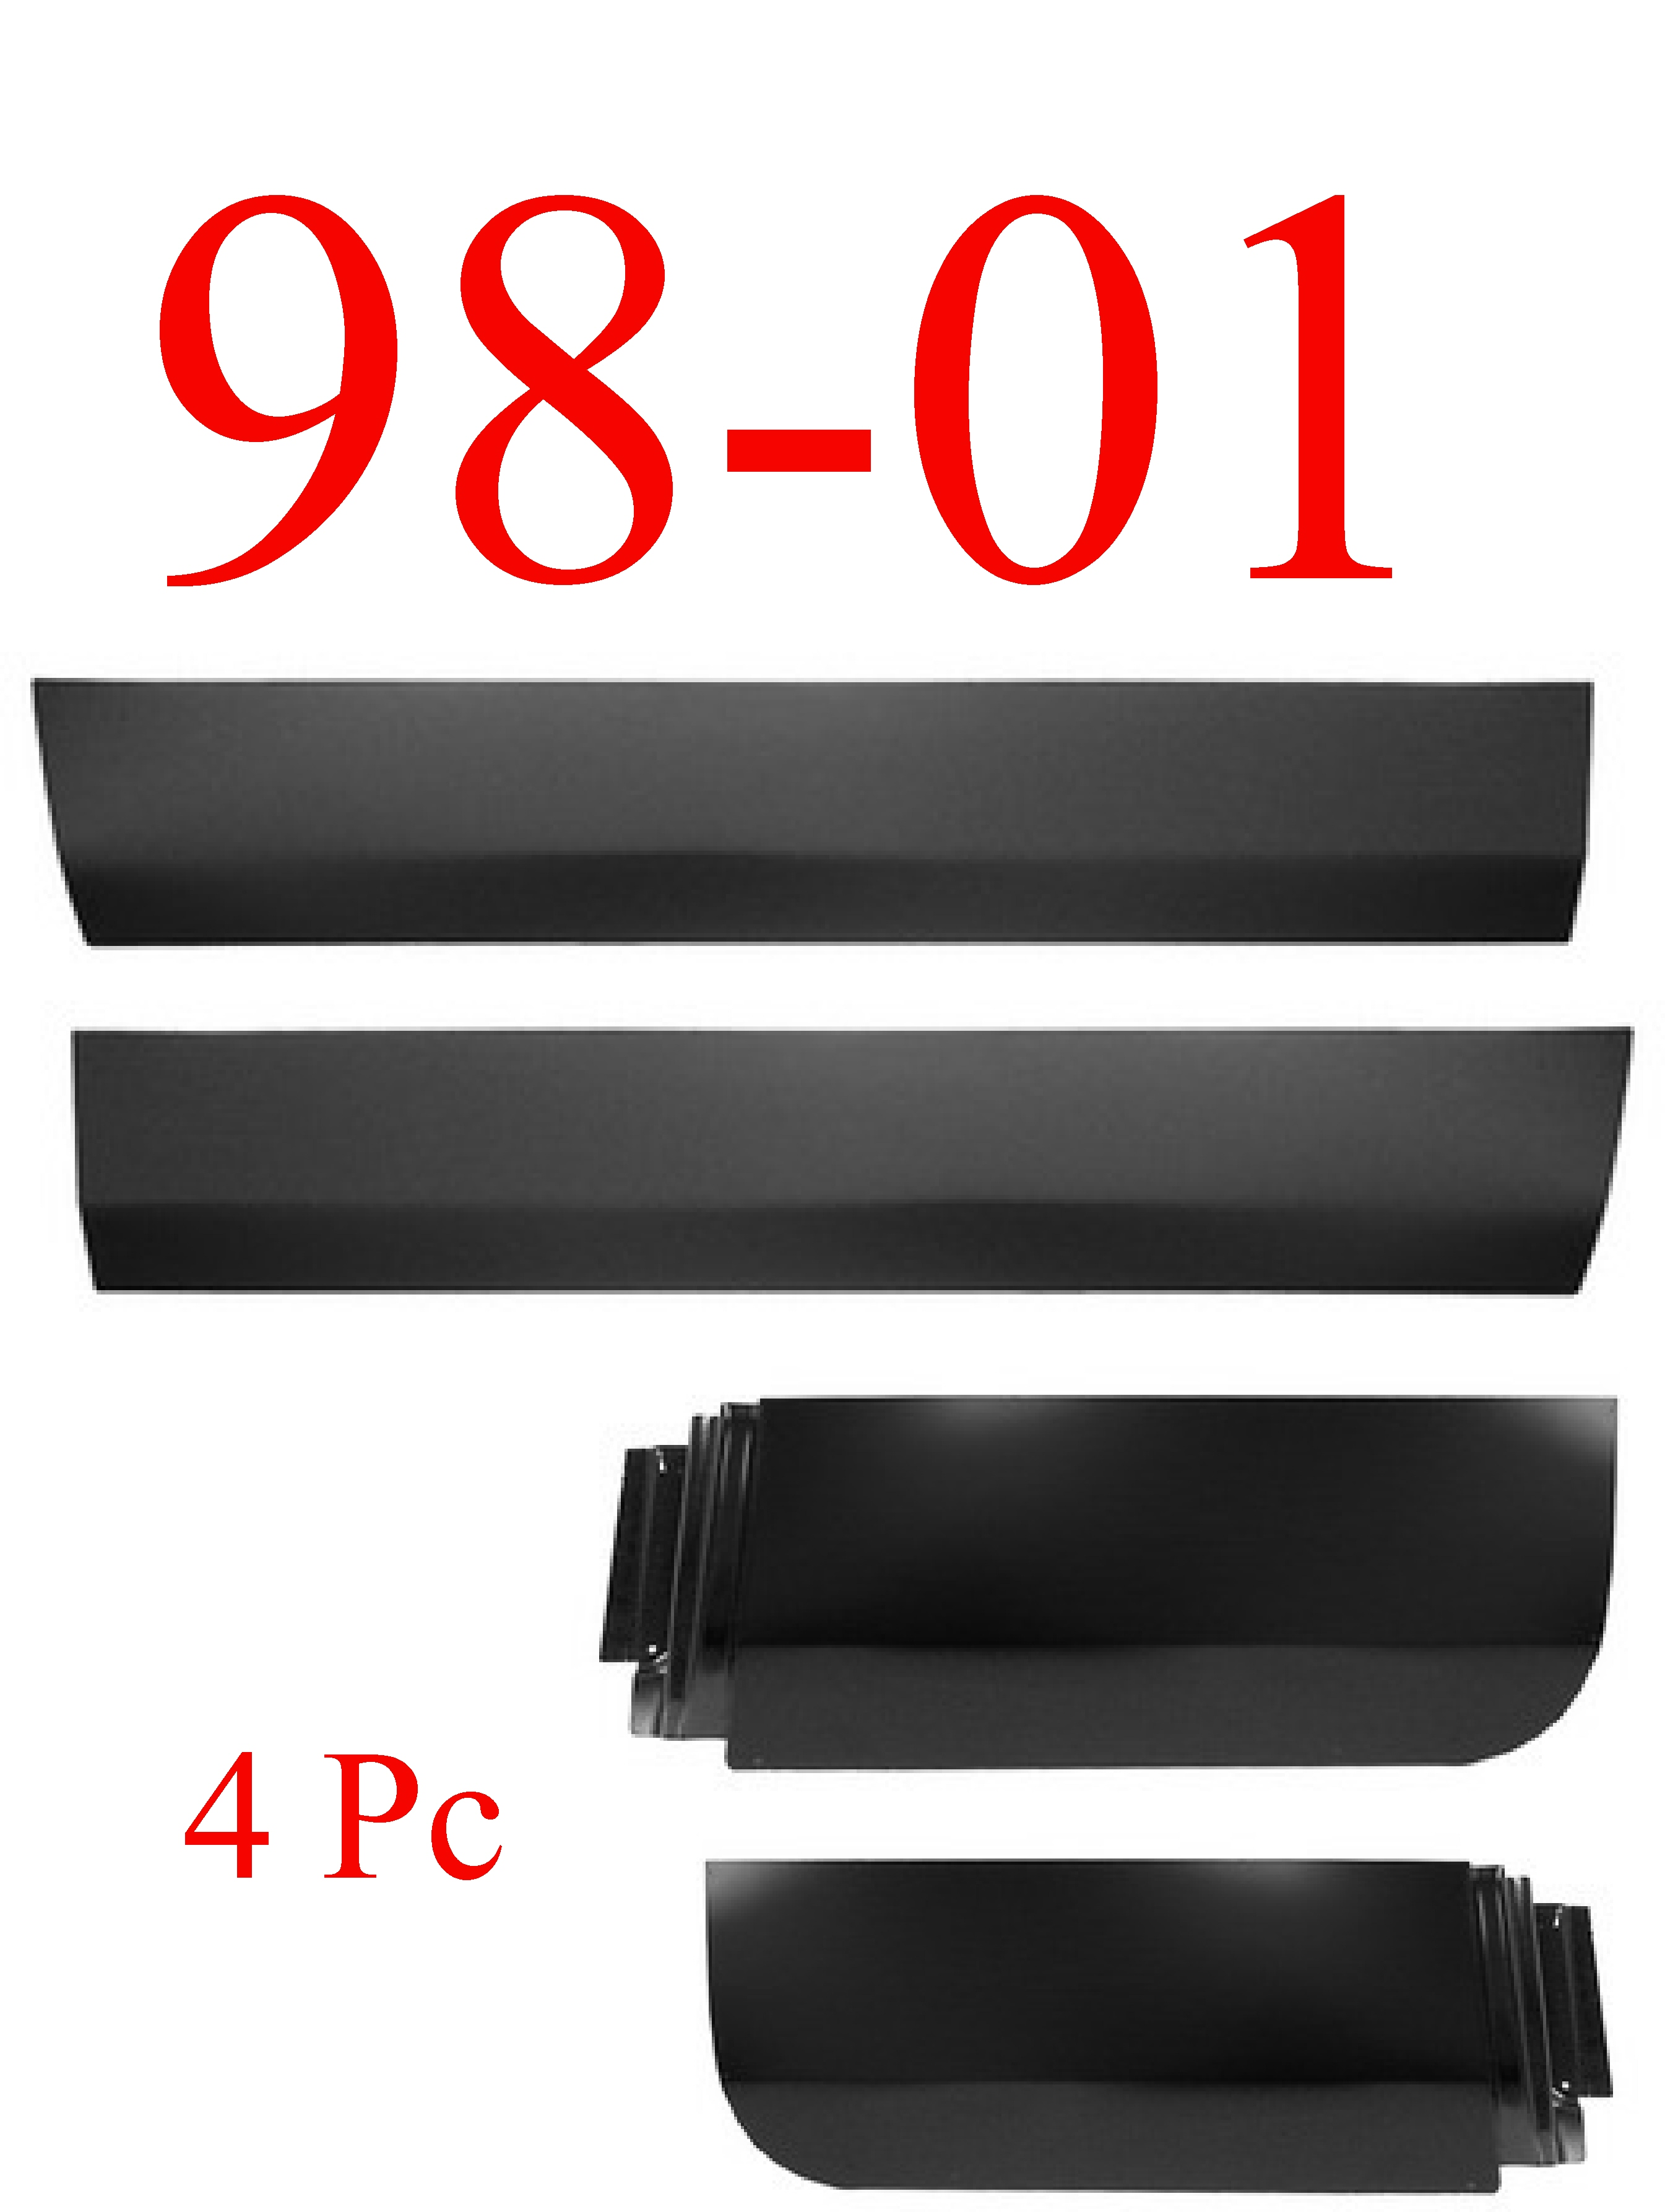 98-01 Dodge 4Pc Quad Cab Door Skin Set